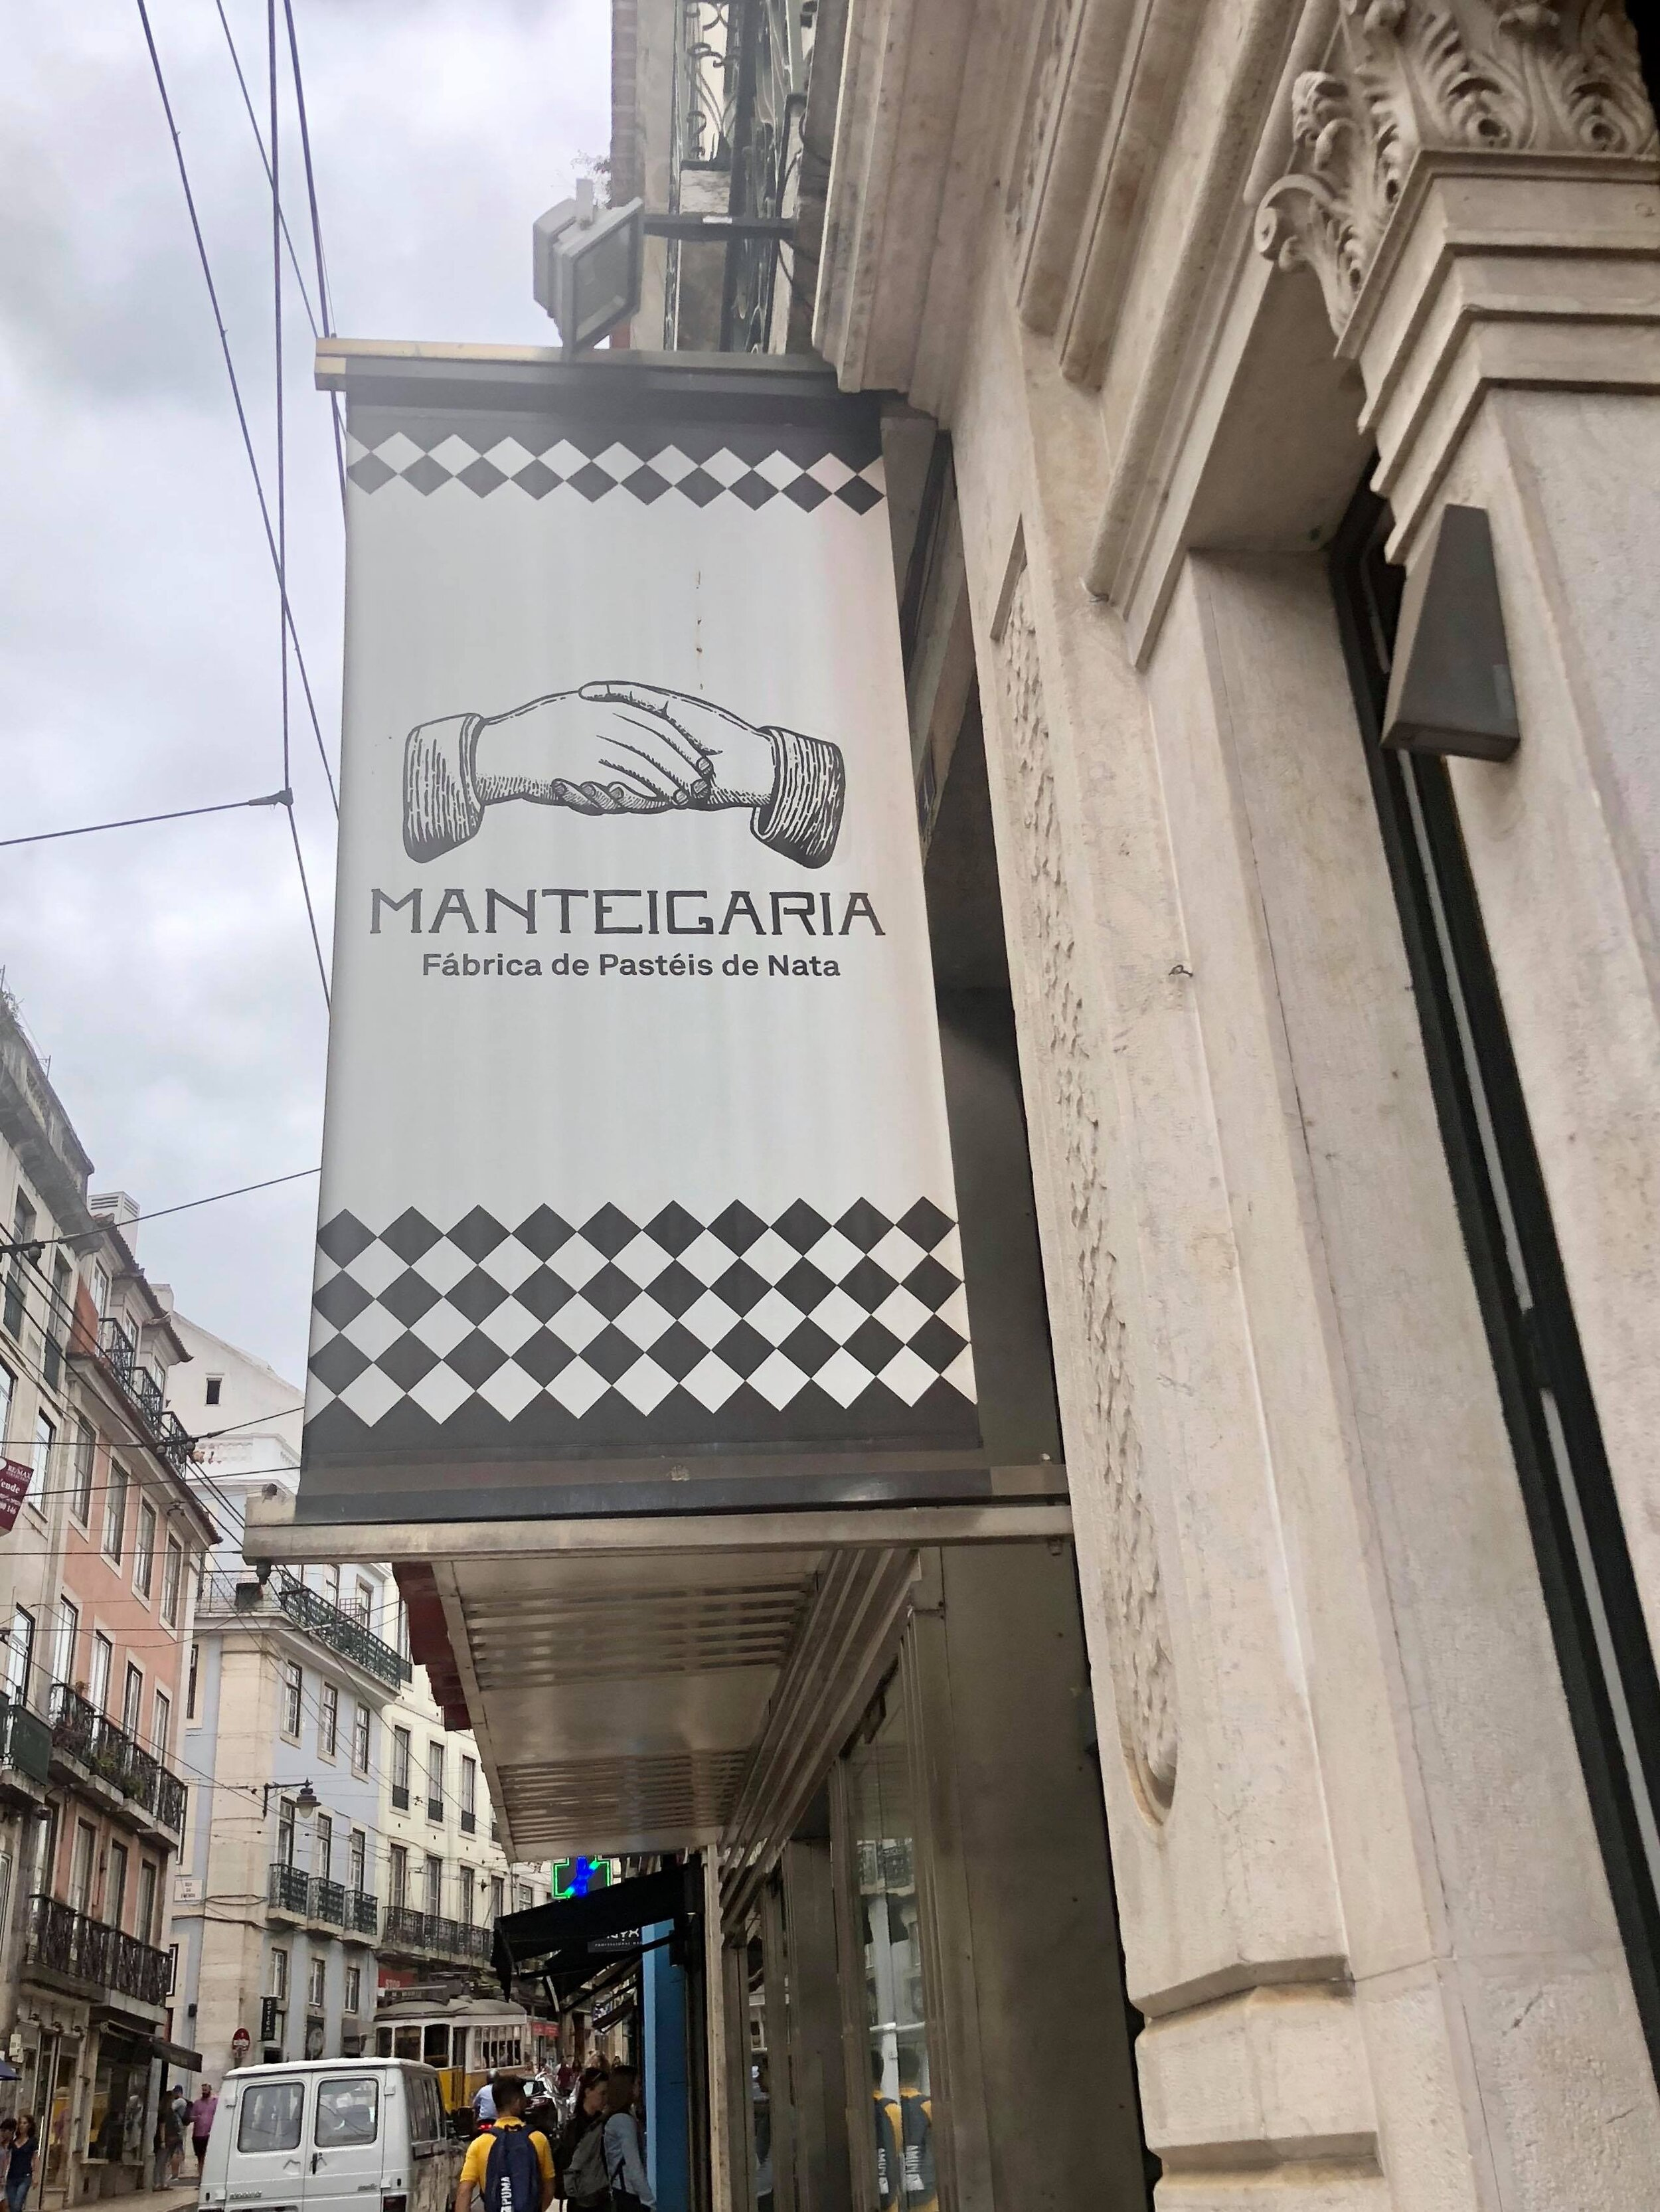 Manteigaria - Popular Choice - A must-try stop for devotees of the egg tart, the pastels de nata here are heavy on the custard, and lighter on the pastry, but none-the-less a decadent, eggy treat.